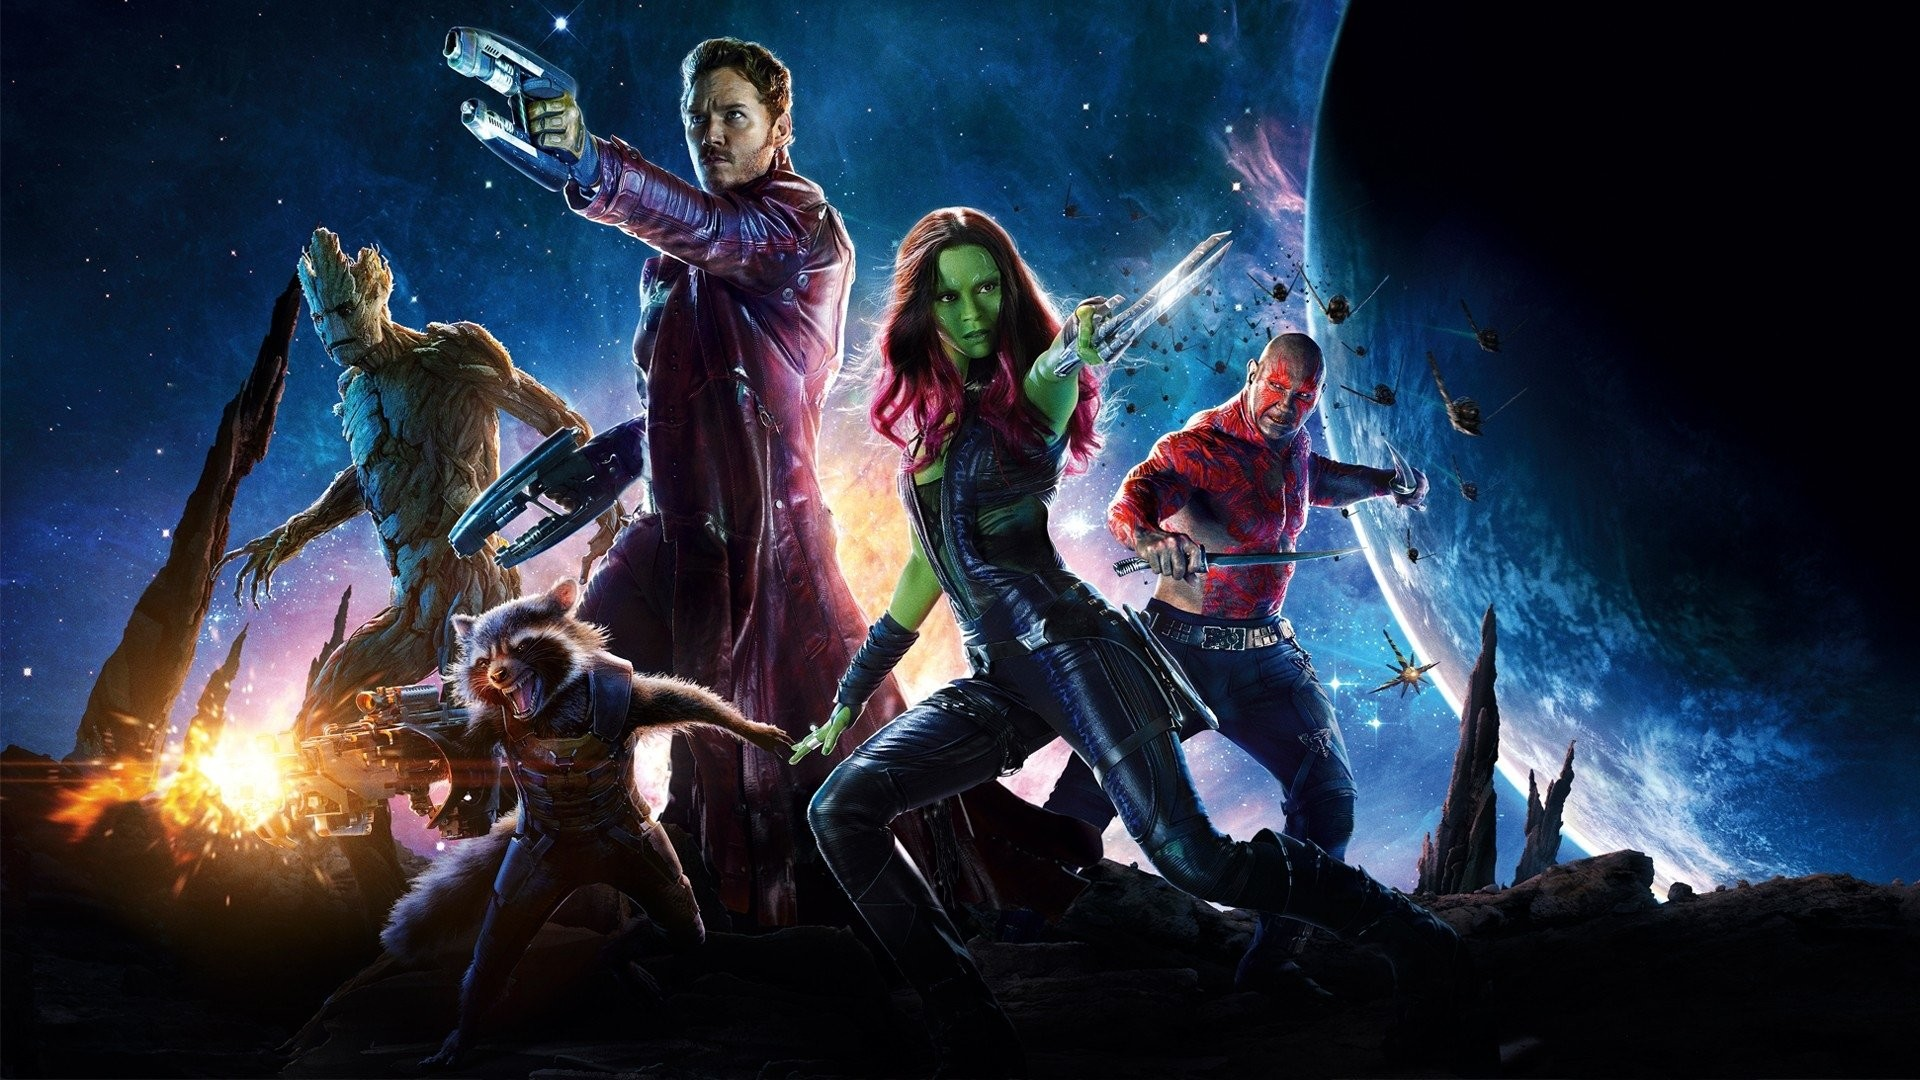 Guardians Of The Galaxy Wallpapers Wallpapertag